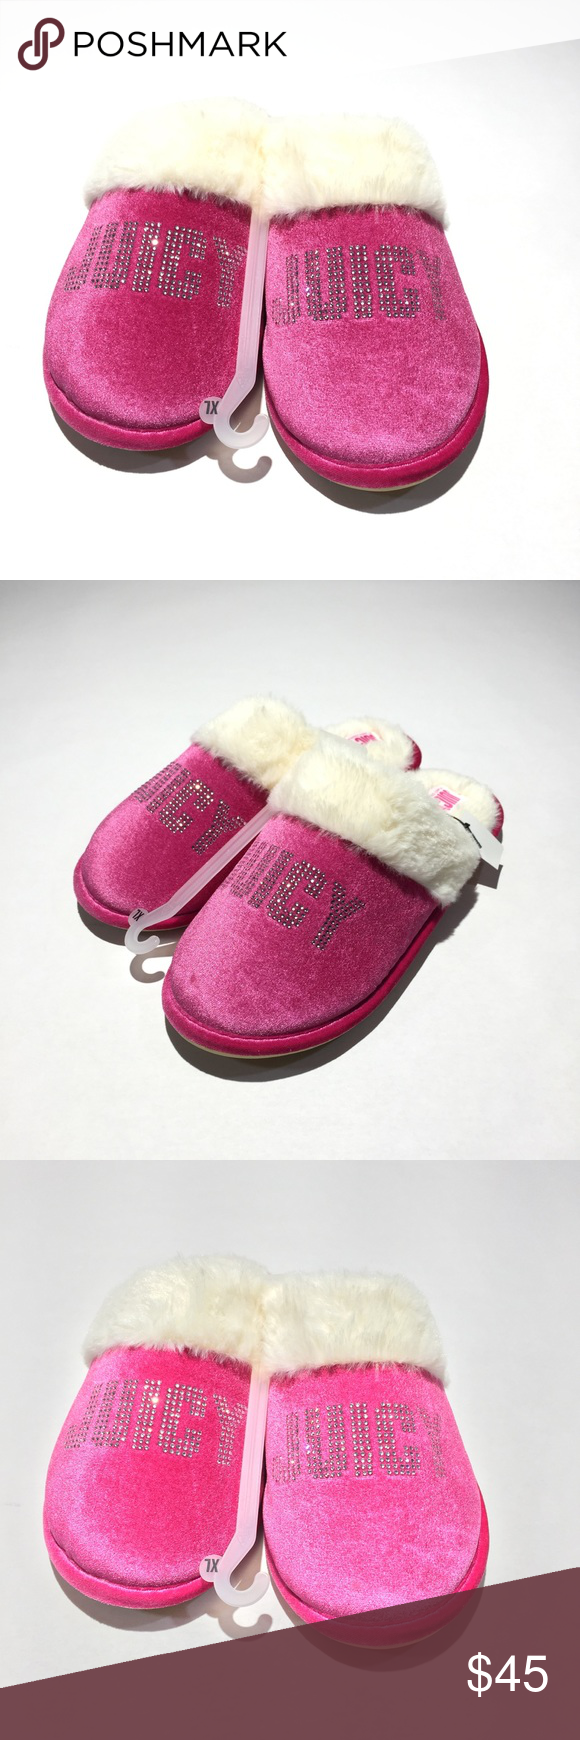 9359f1bc535 Juicy by Juicy Couture Gabi Crystal Slippers ☀ Sz XL   Sz 9 - 10 ☀ Faux  Shearling Lining ☀ Pink with Crystals ☀ Length - 11 in 📬 Ships next ...